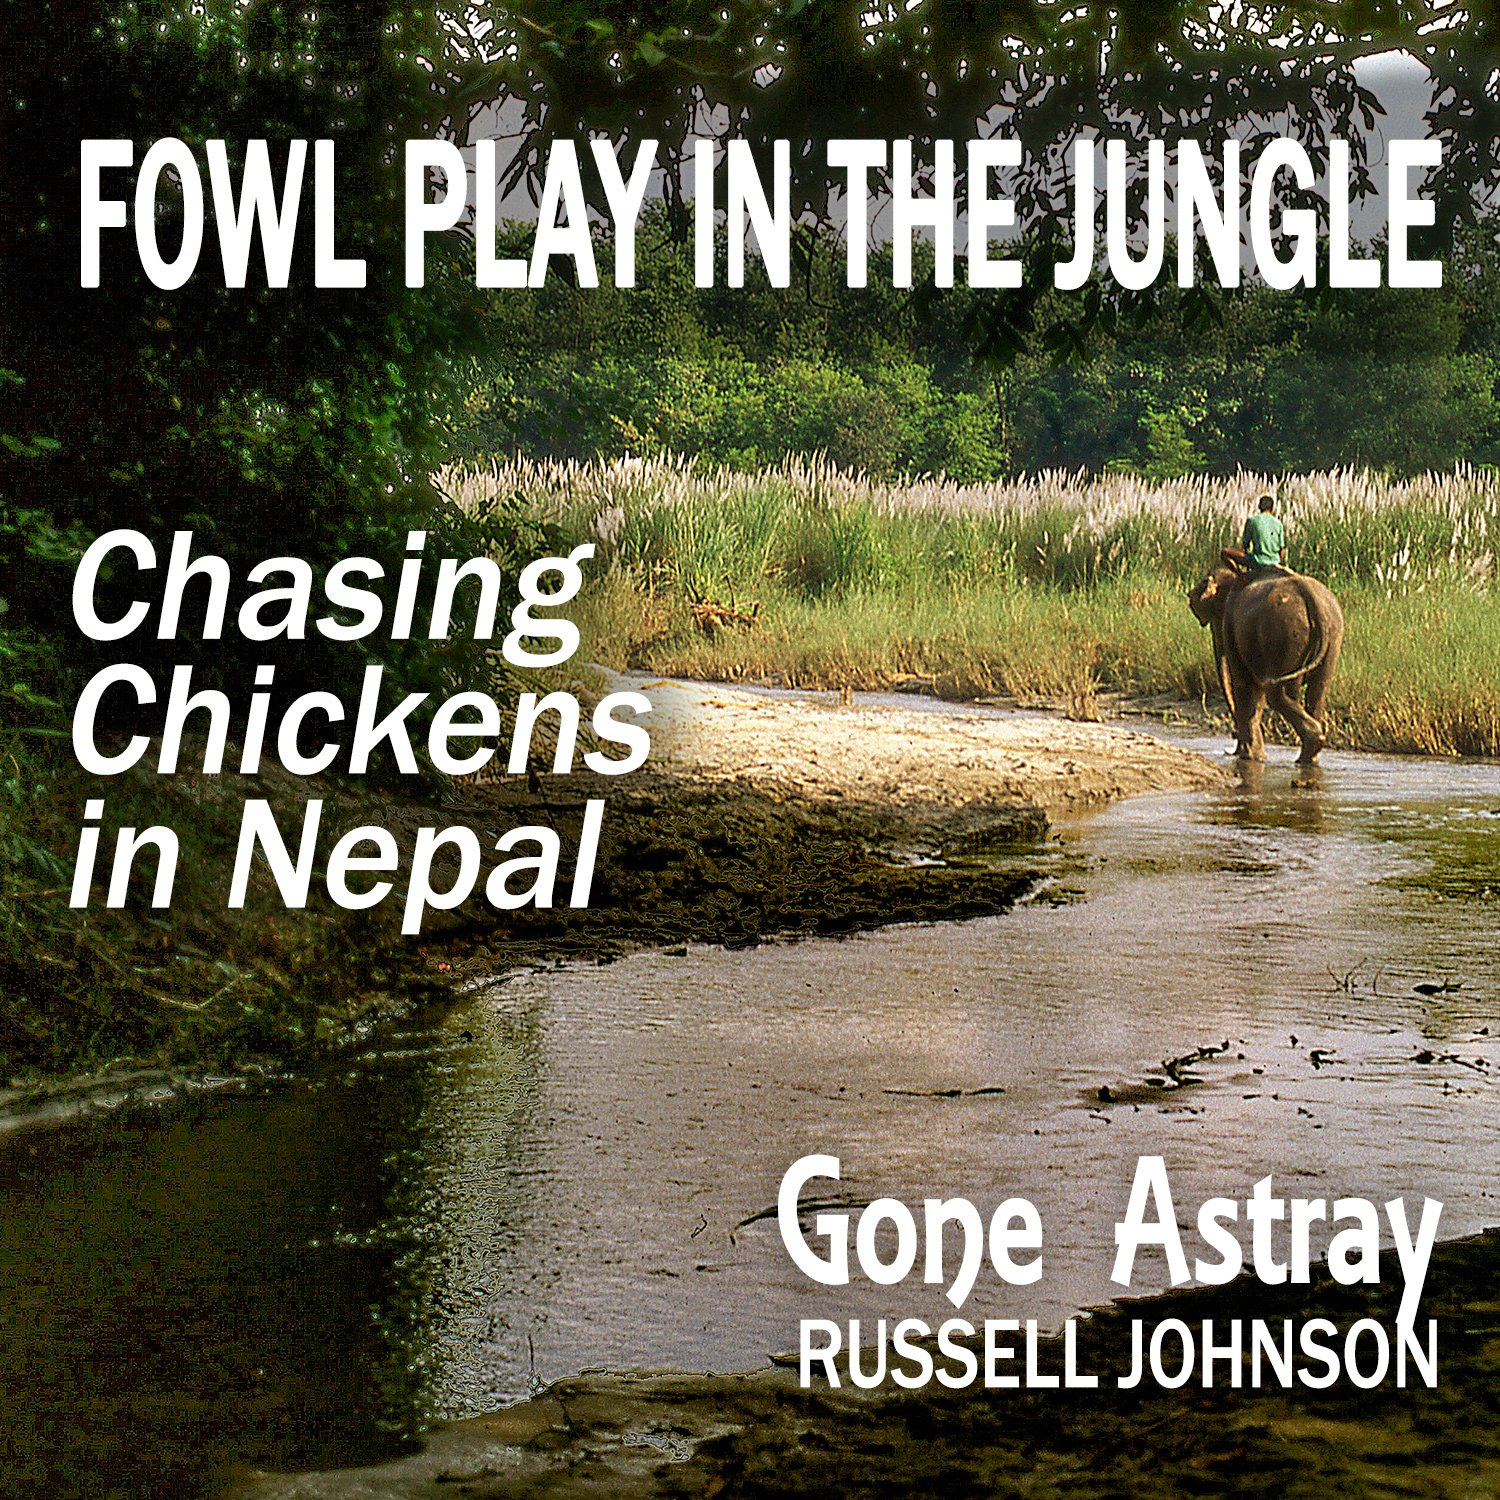 Fowl Play - Chasing Chickens in Nepal